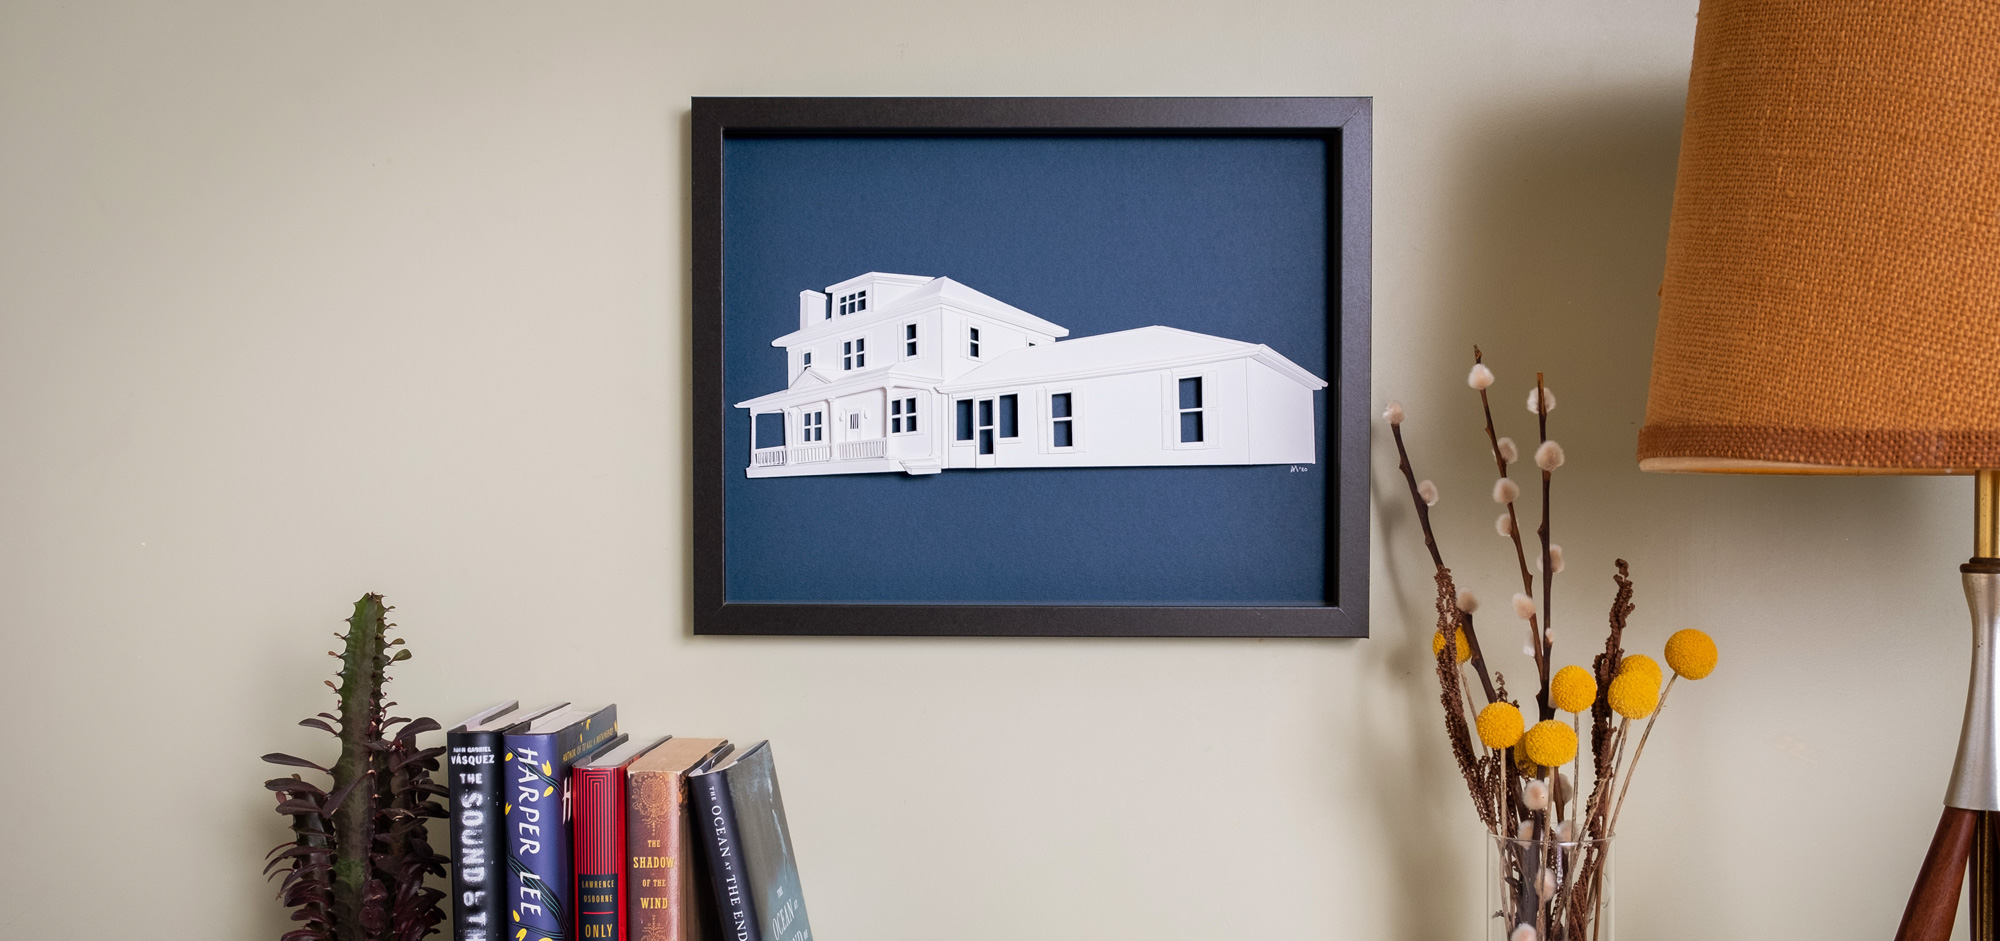 Framed house portrait hanging on a living room wall